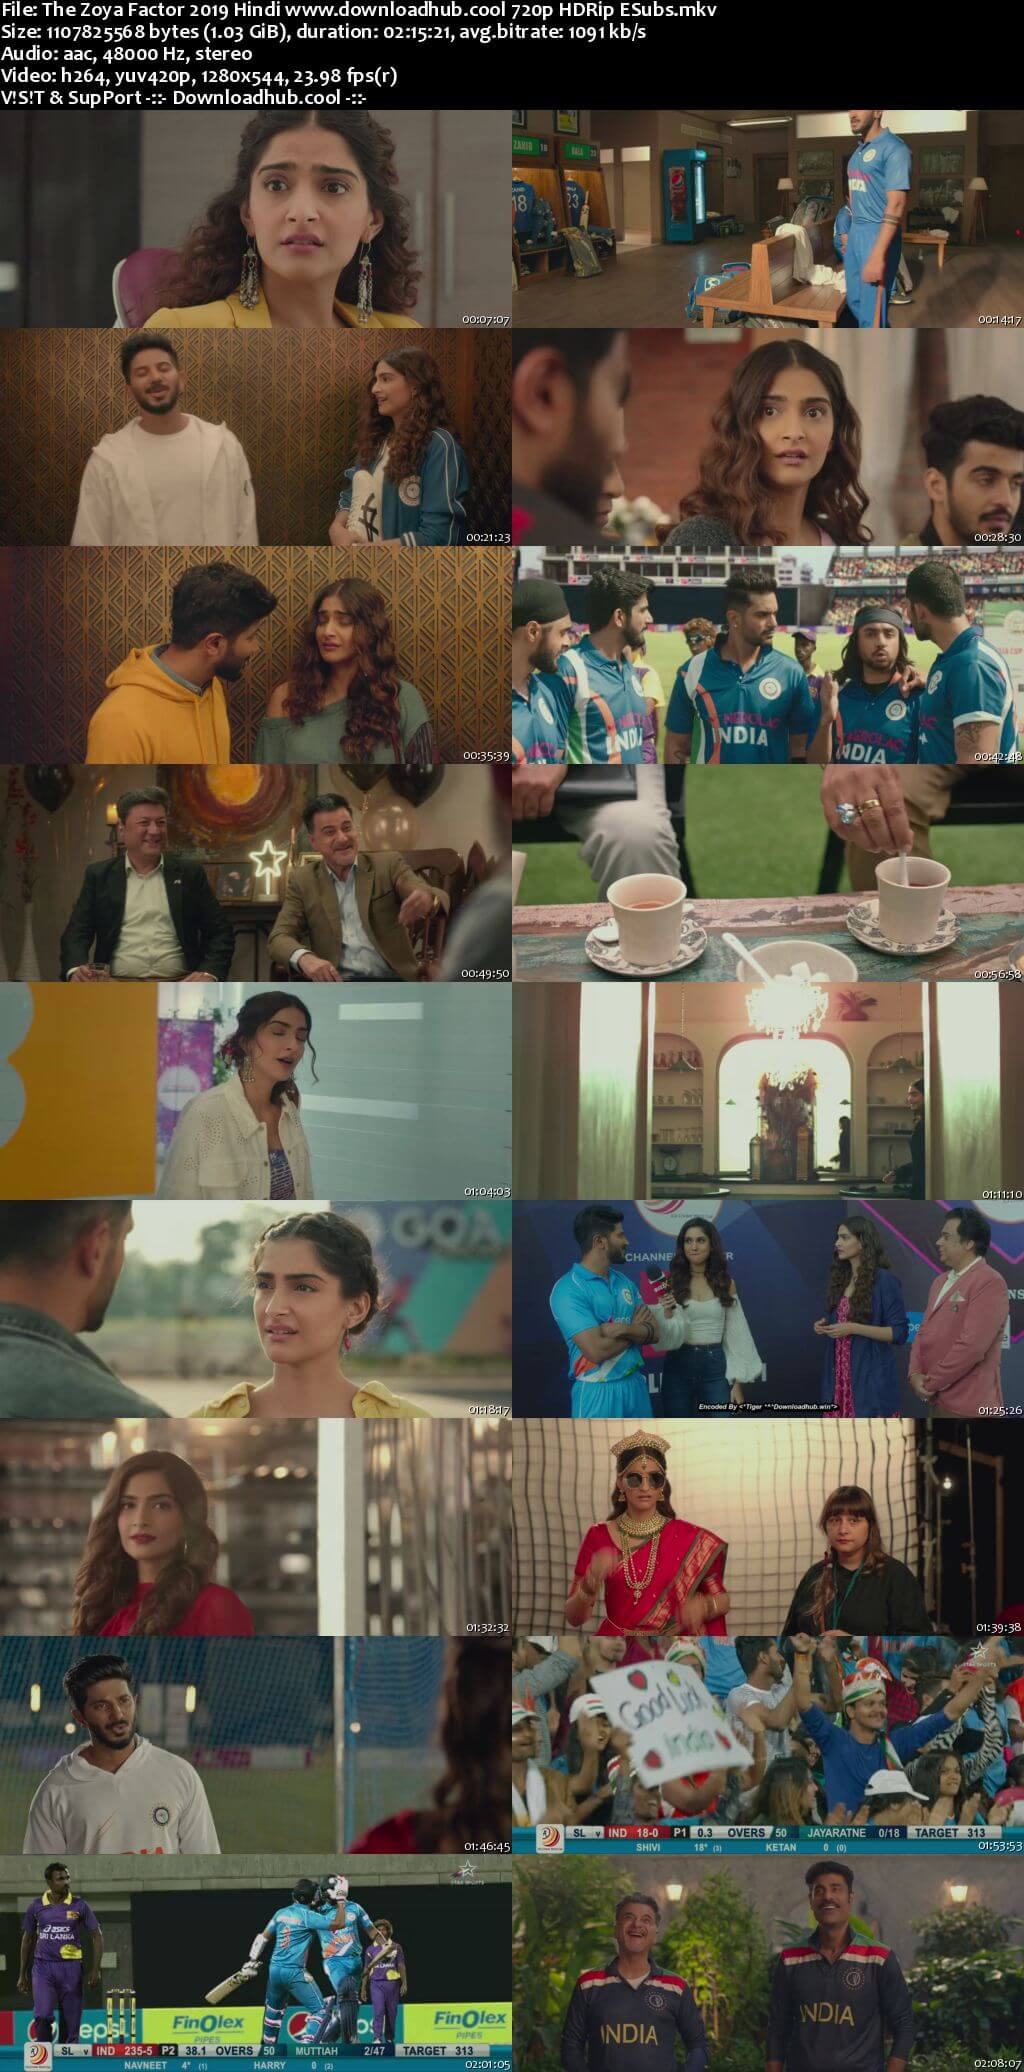 The Zoya Factor 2019 Hindi 720p HDRip ESubs